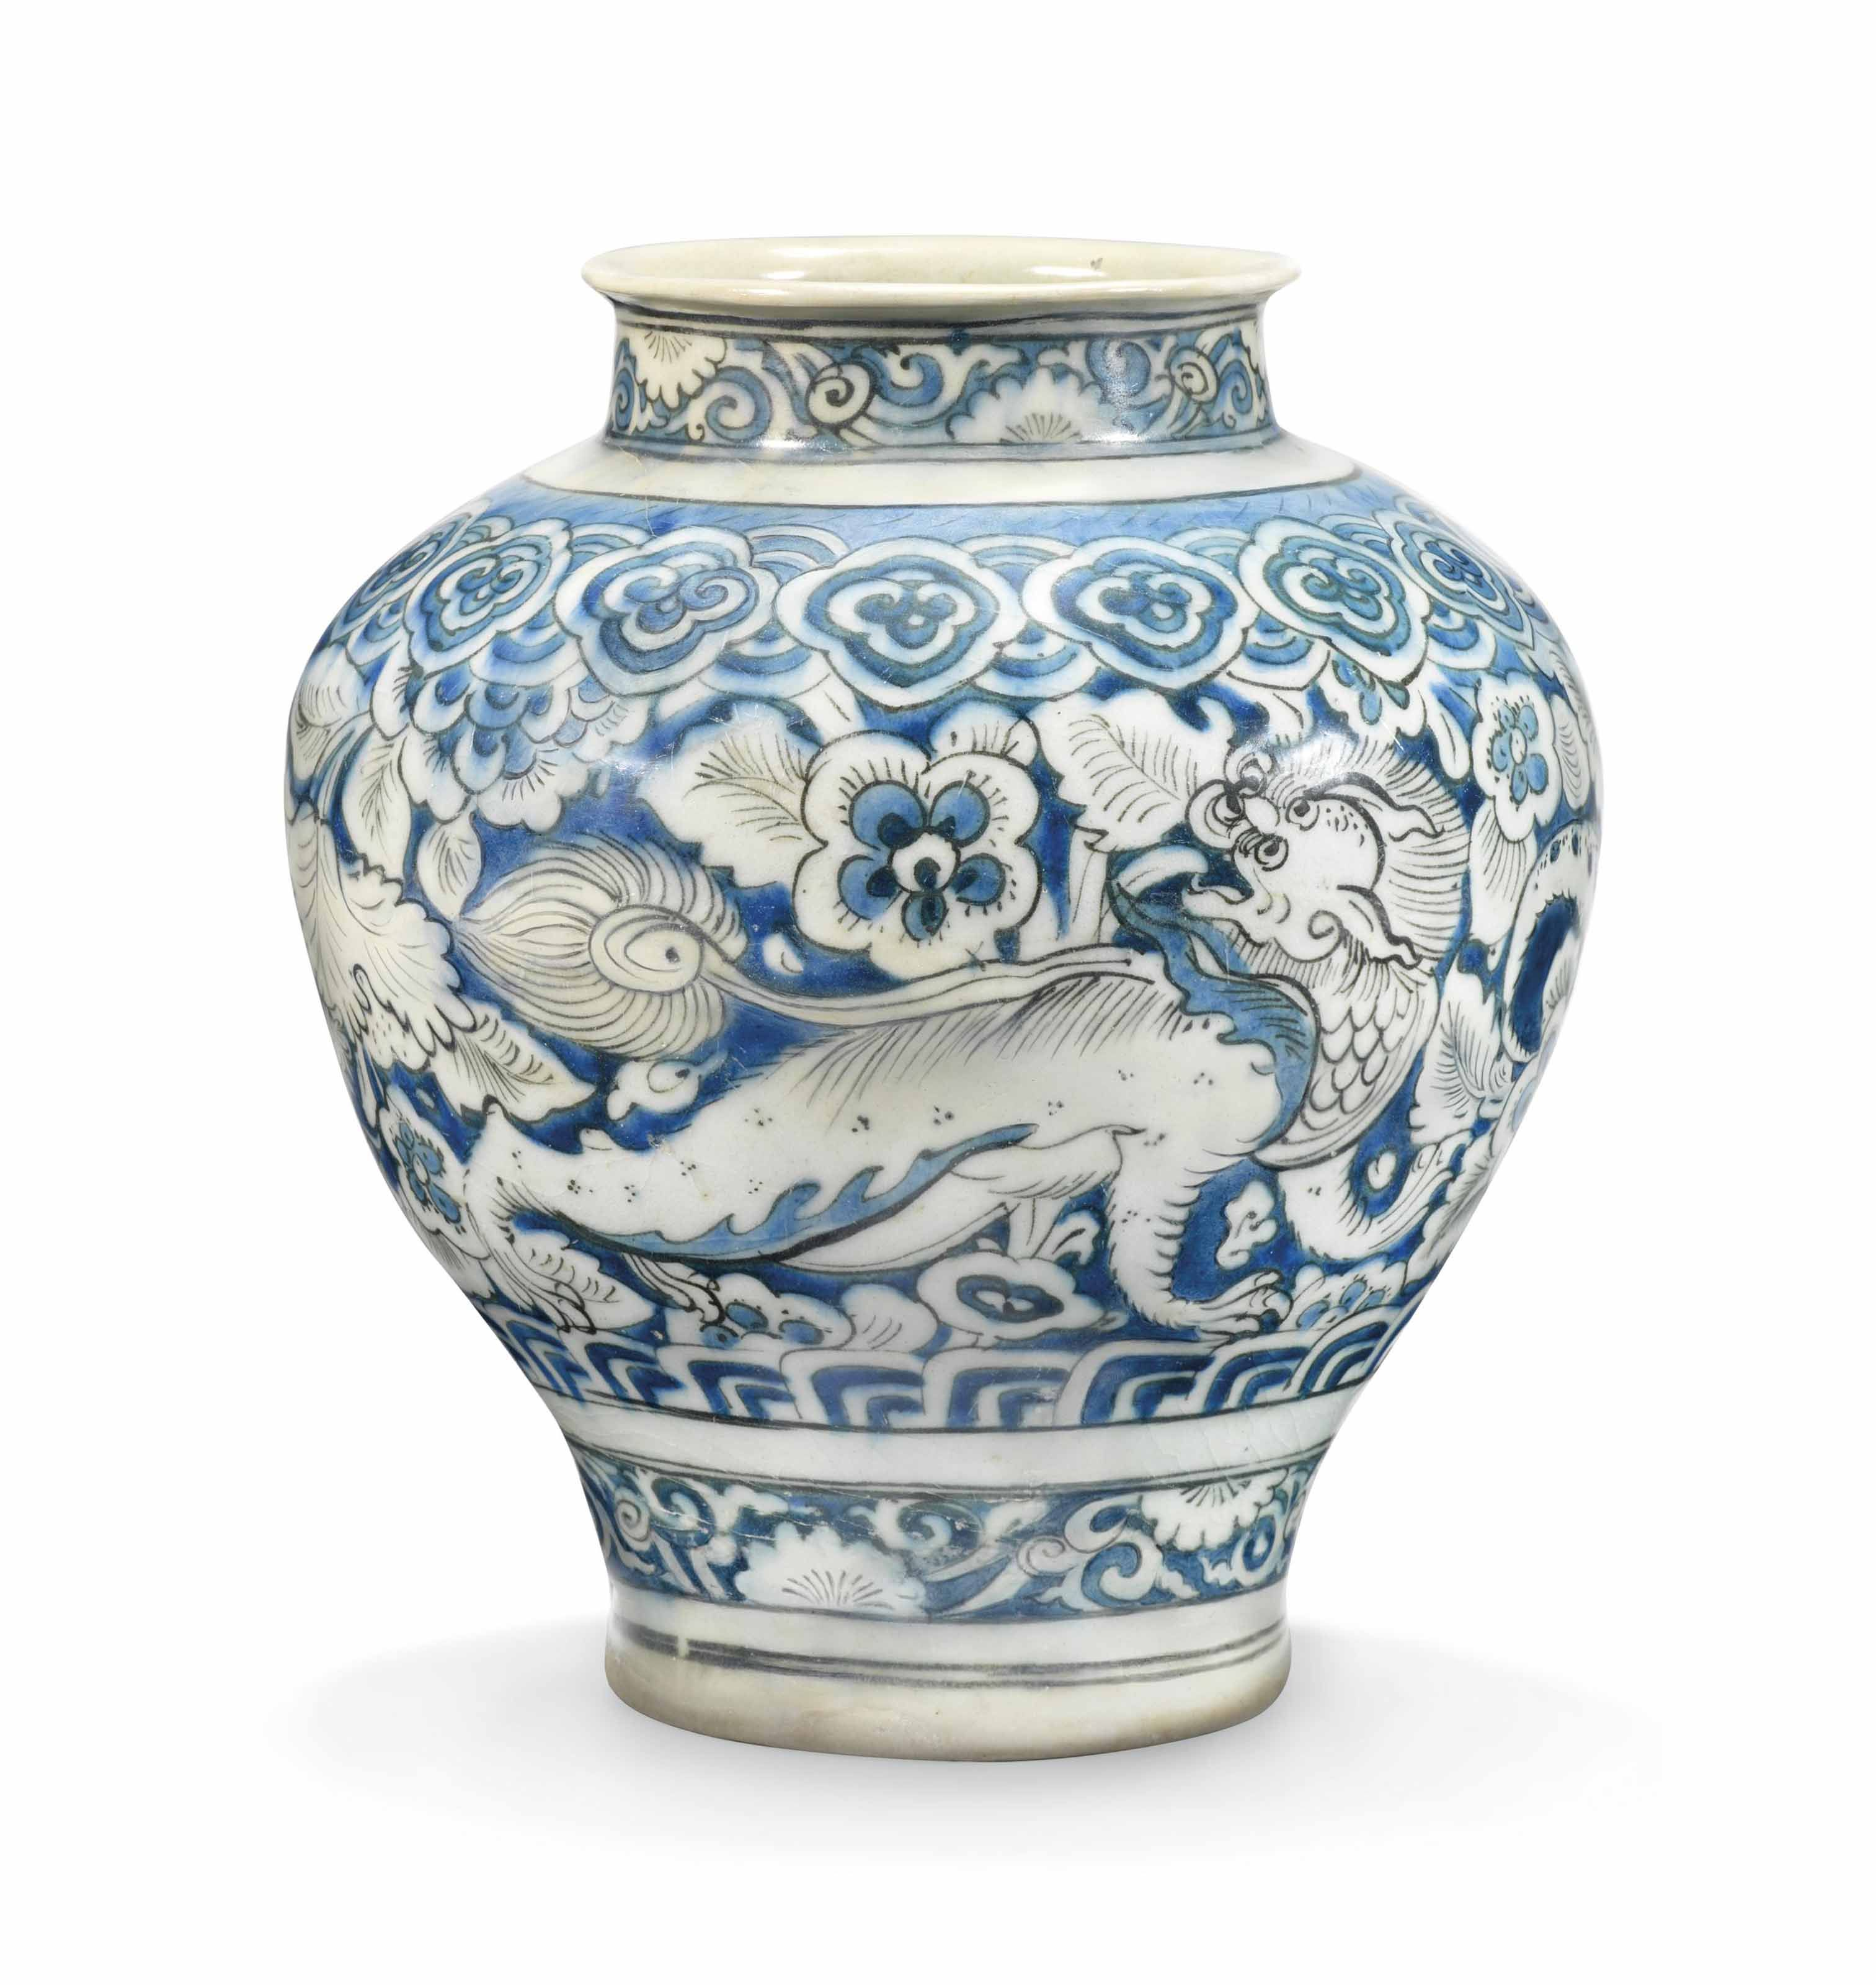 A Safavid Blue And White Pottery Jar Iran Second Quarter 17th Century Jar All Other Categories Of Objects Christie S Pottery Jar White Pottery Pottery